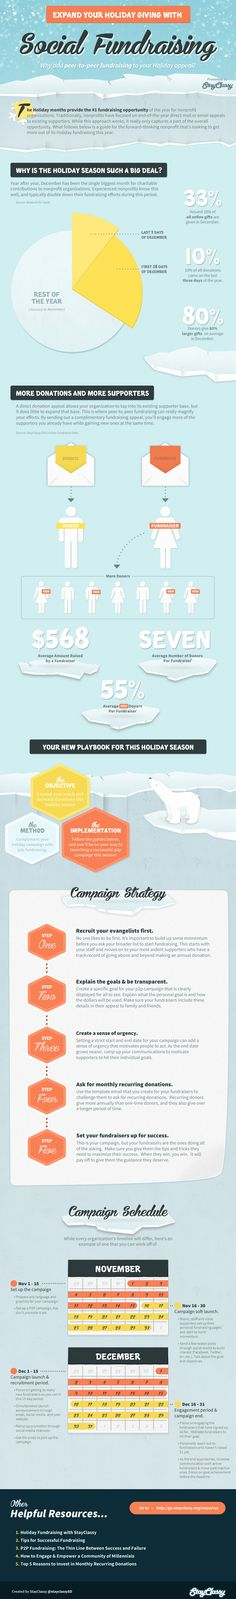 People Make 80% Larger Nonprofit Donations in December [INFOGRAPHIC from StayClassy]